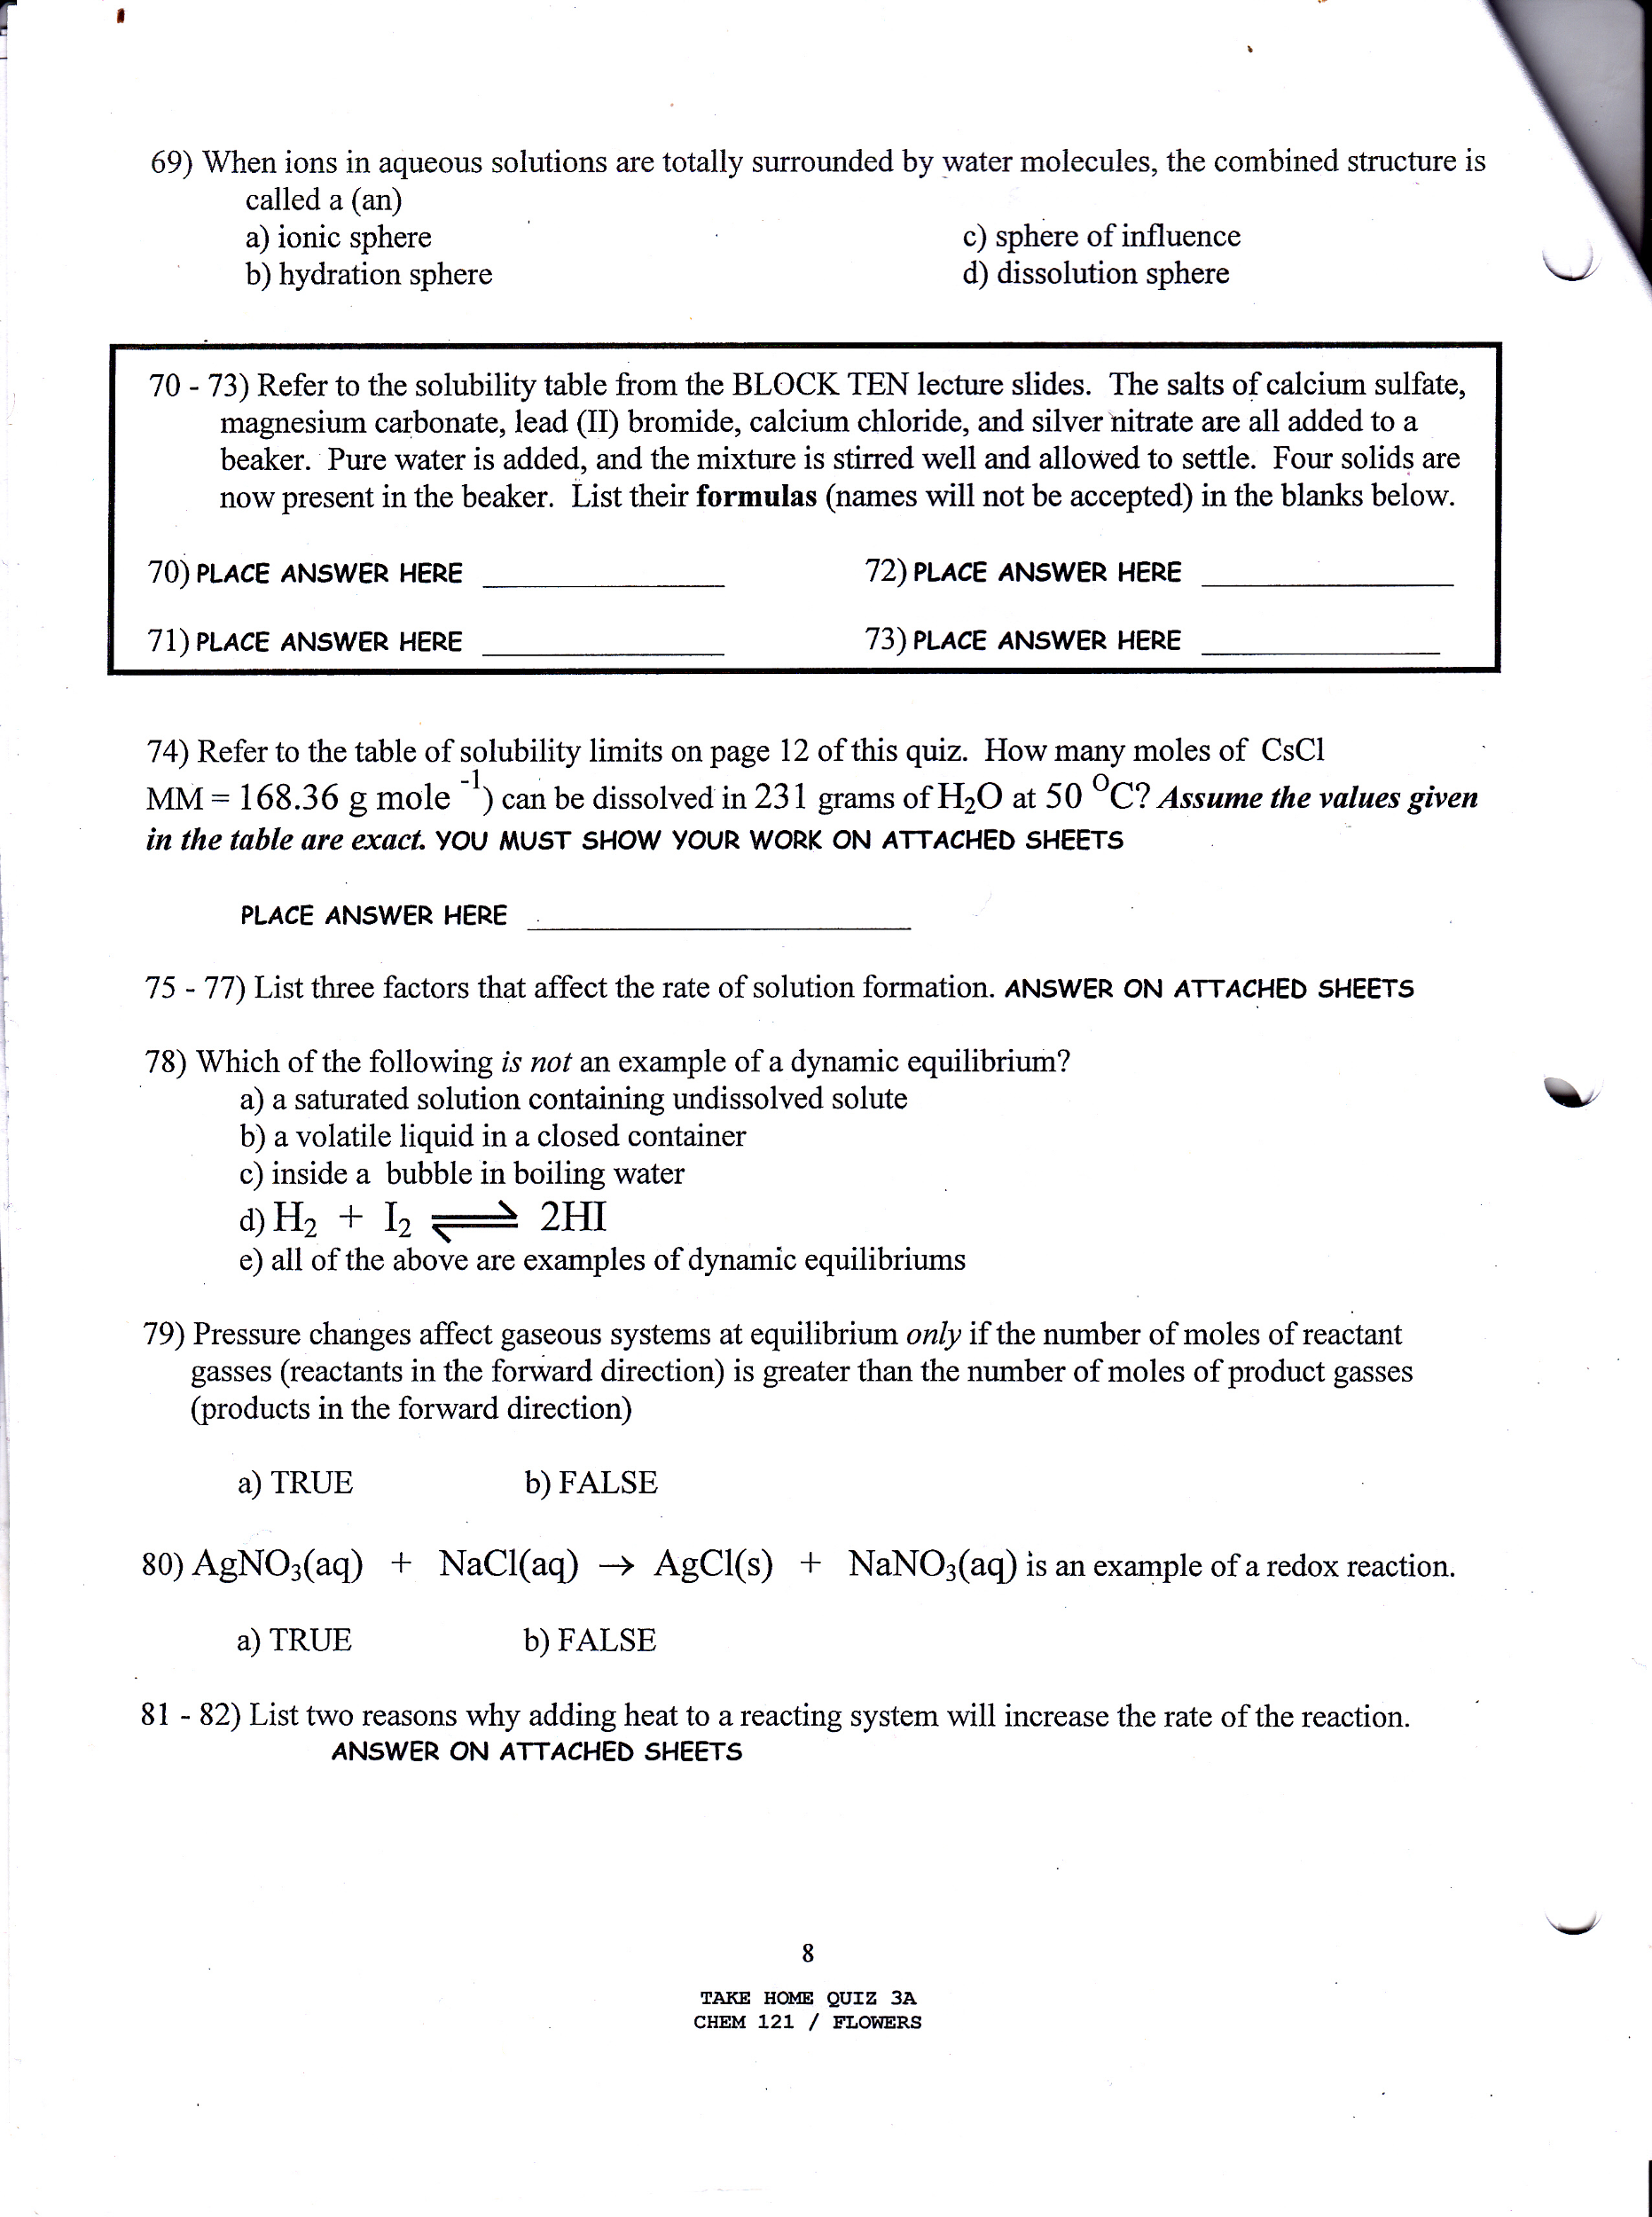 chemistry archive com when ions in aqueous solutions are totally surrounded by water molecules the combined structure is called a an refer to the solubility table from the